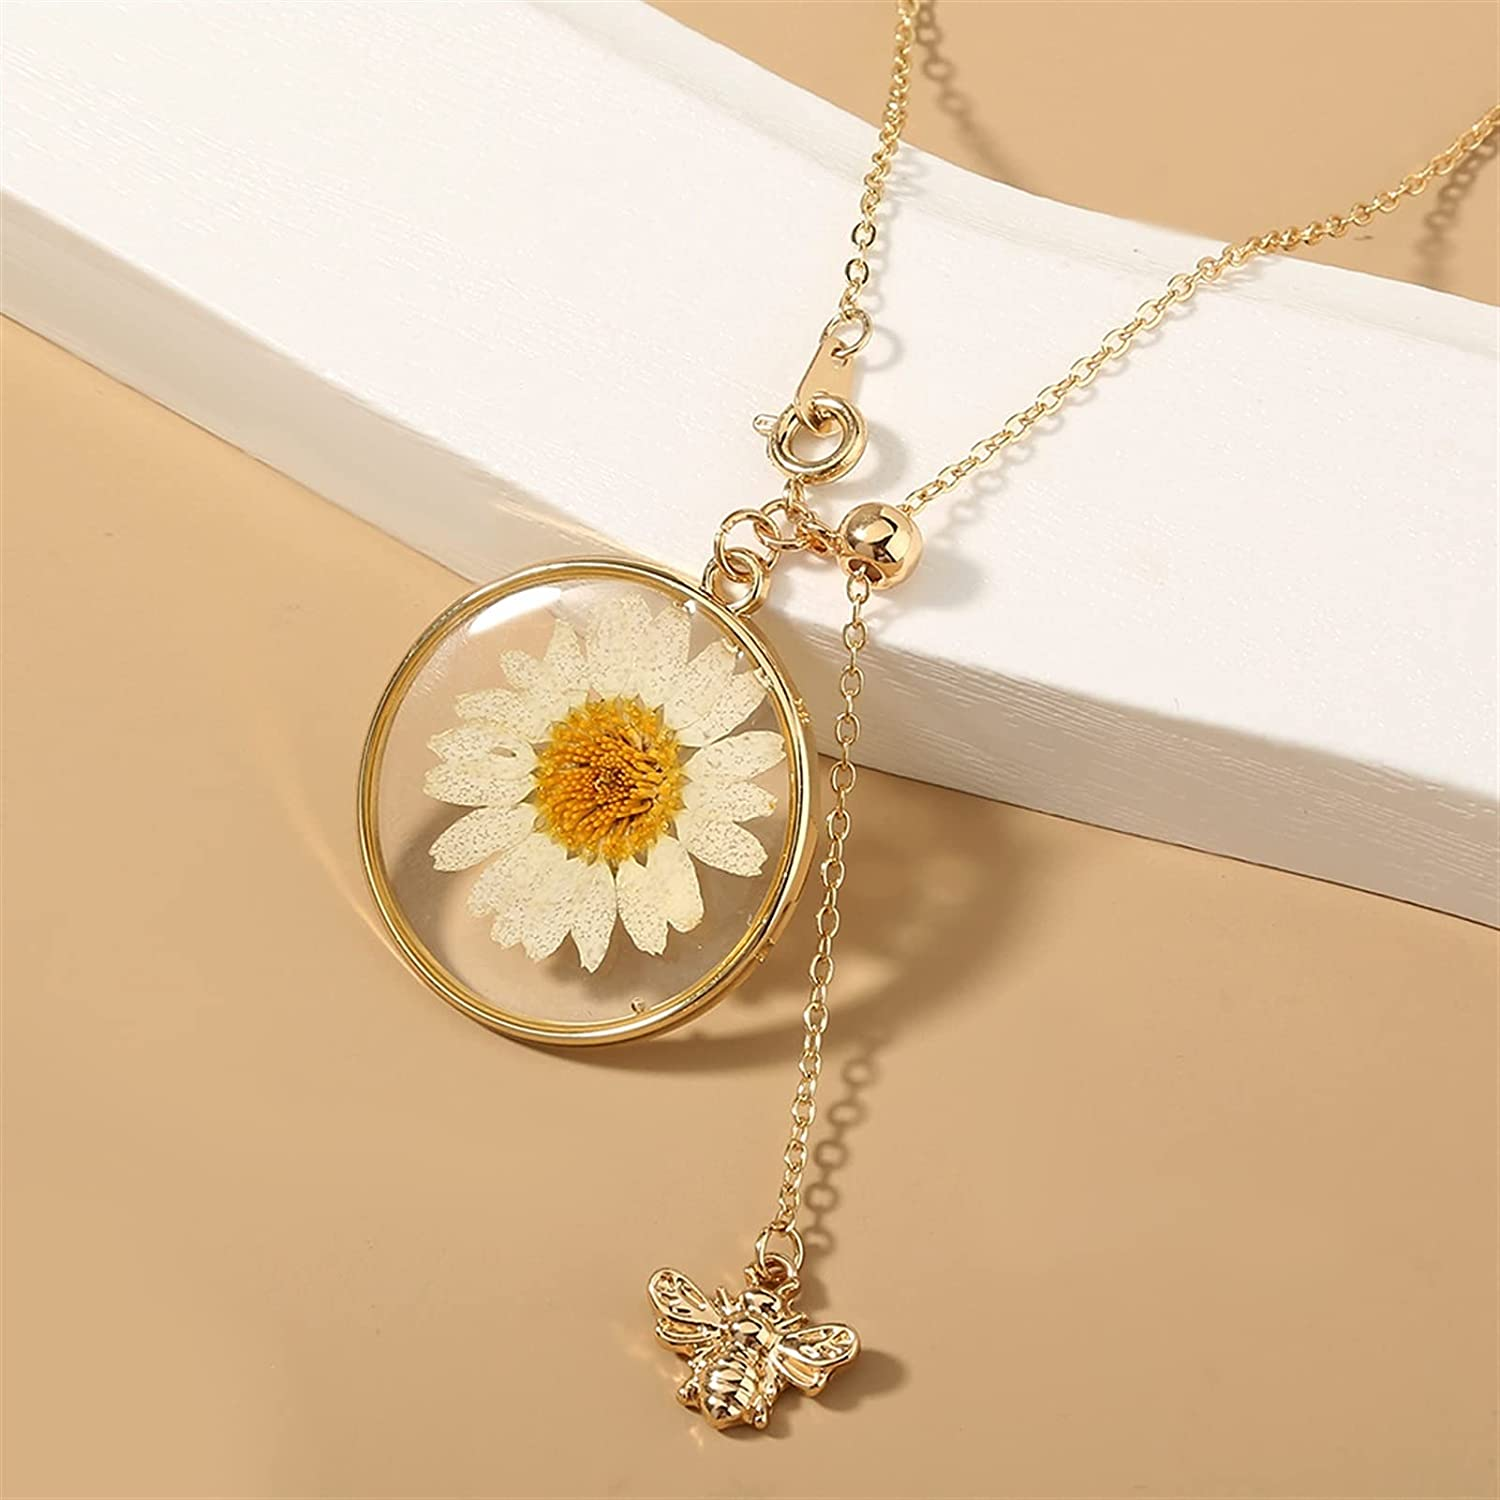 Necklace, Small Daisy Flower Bee Pendant Necklace Dried Flower Round Heart Shaped Glass Necklace for Women Party Dry Flower Jewelry (Metal Color : NC21Y0051)